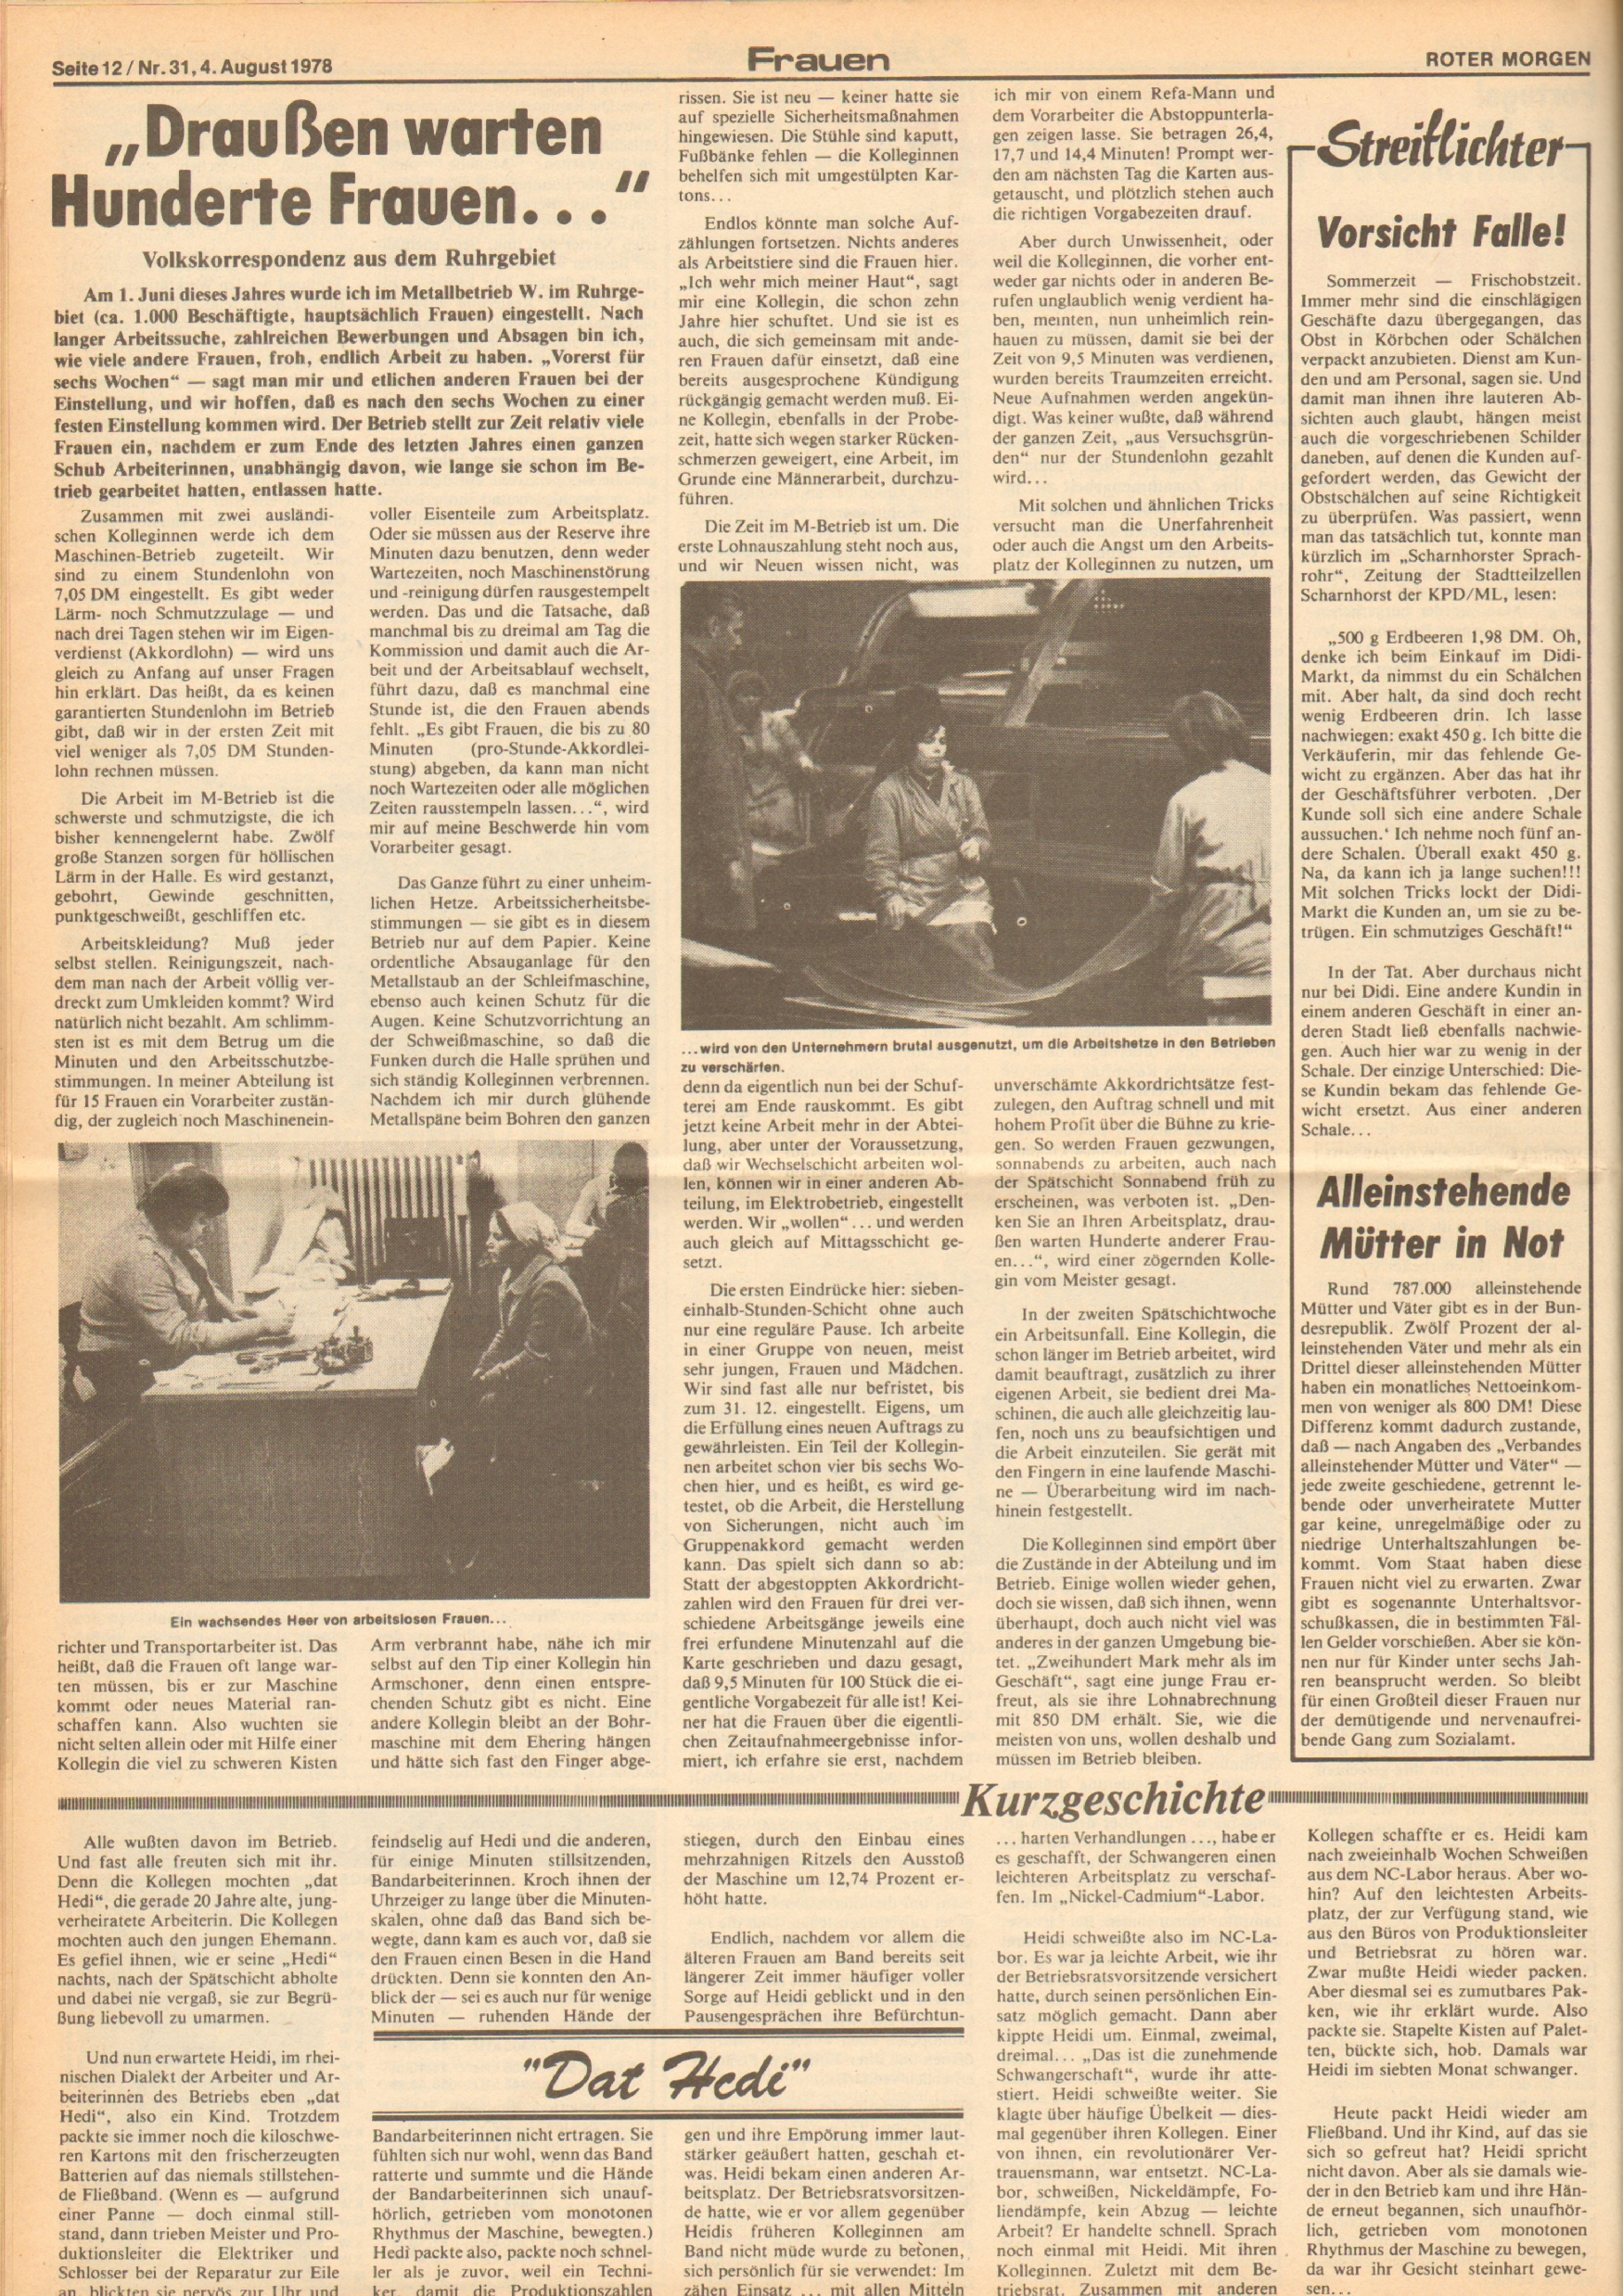 Roter Morgen, 12. Jg., 4. August 1978, Nr. 31, Seite 12